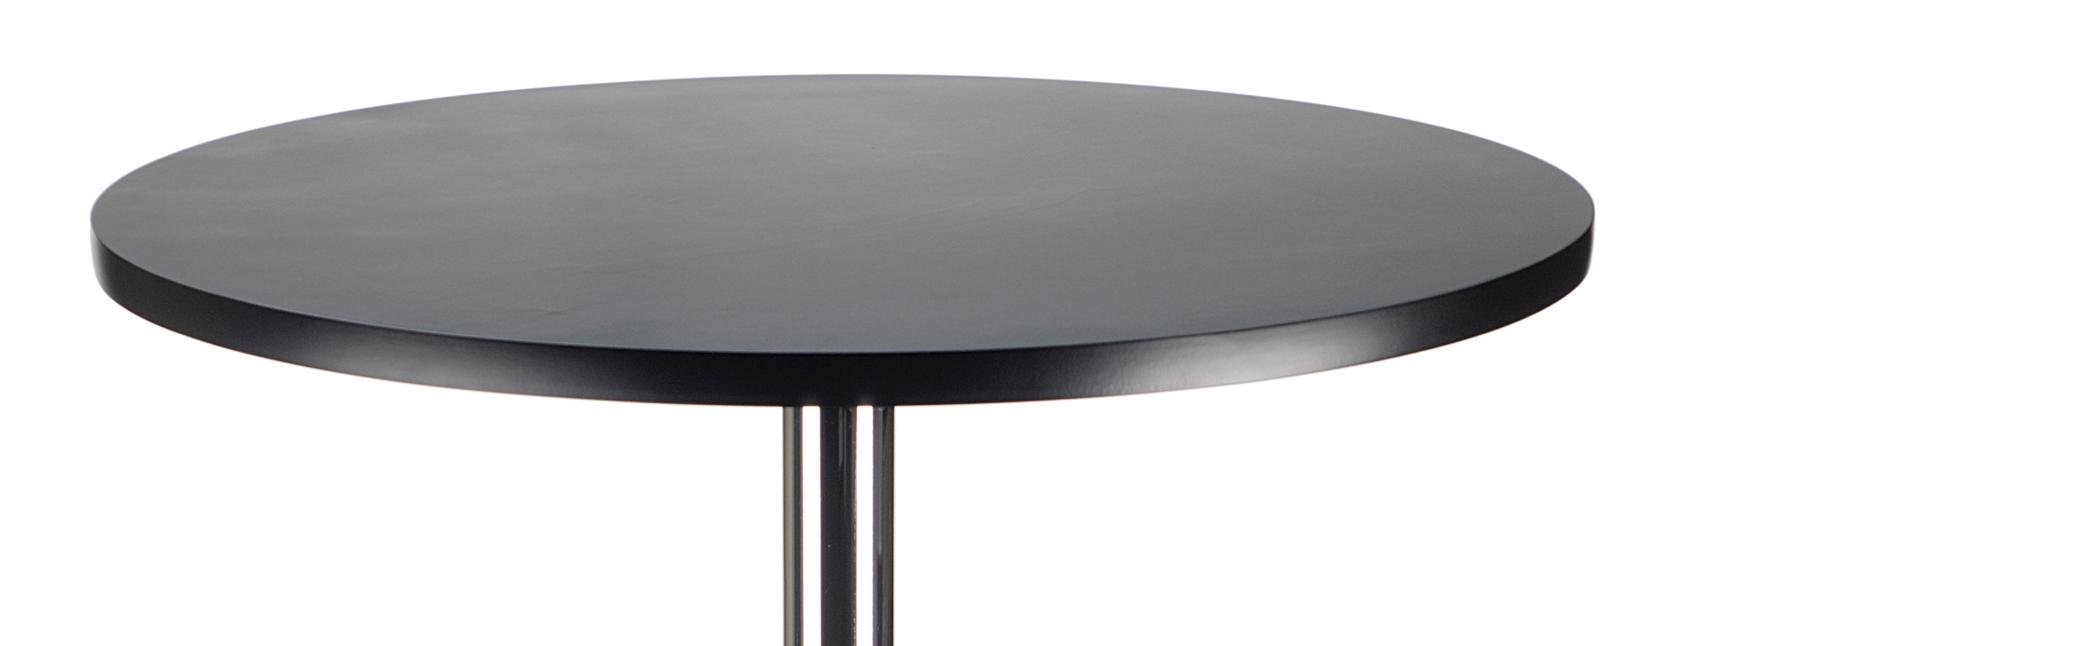 Winsome Wood Black And Chrome Pub Table Amazon Ca Home